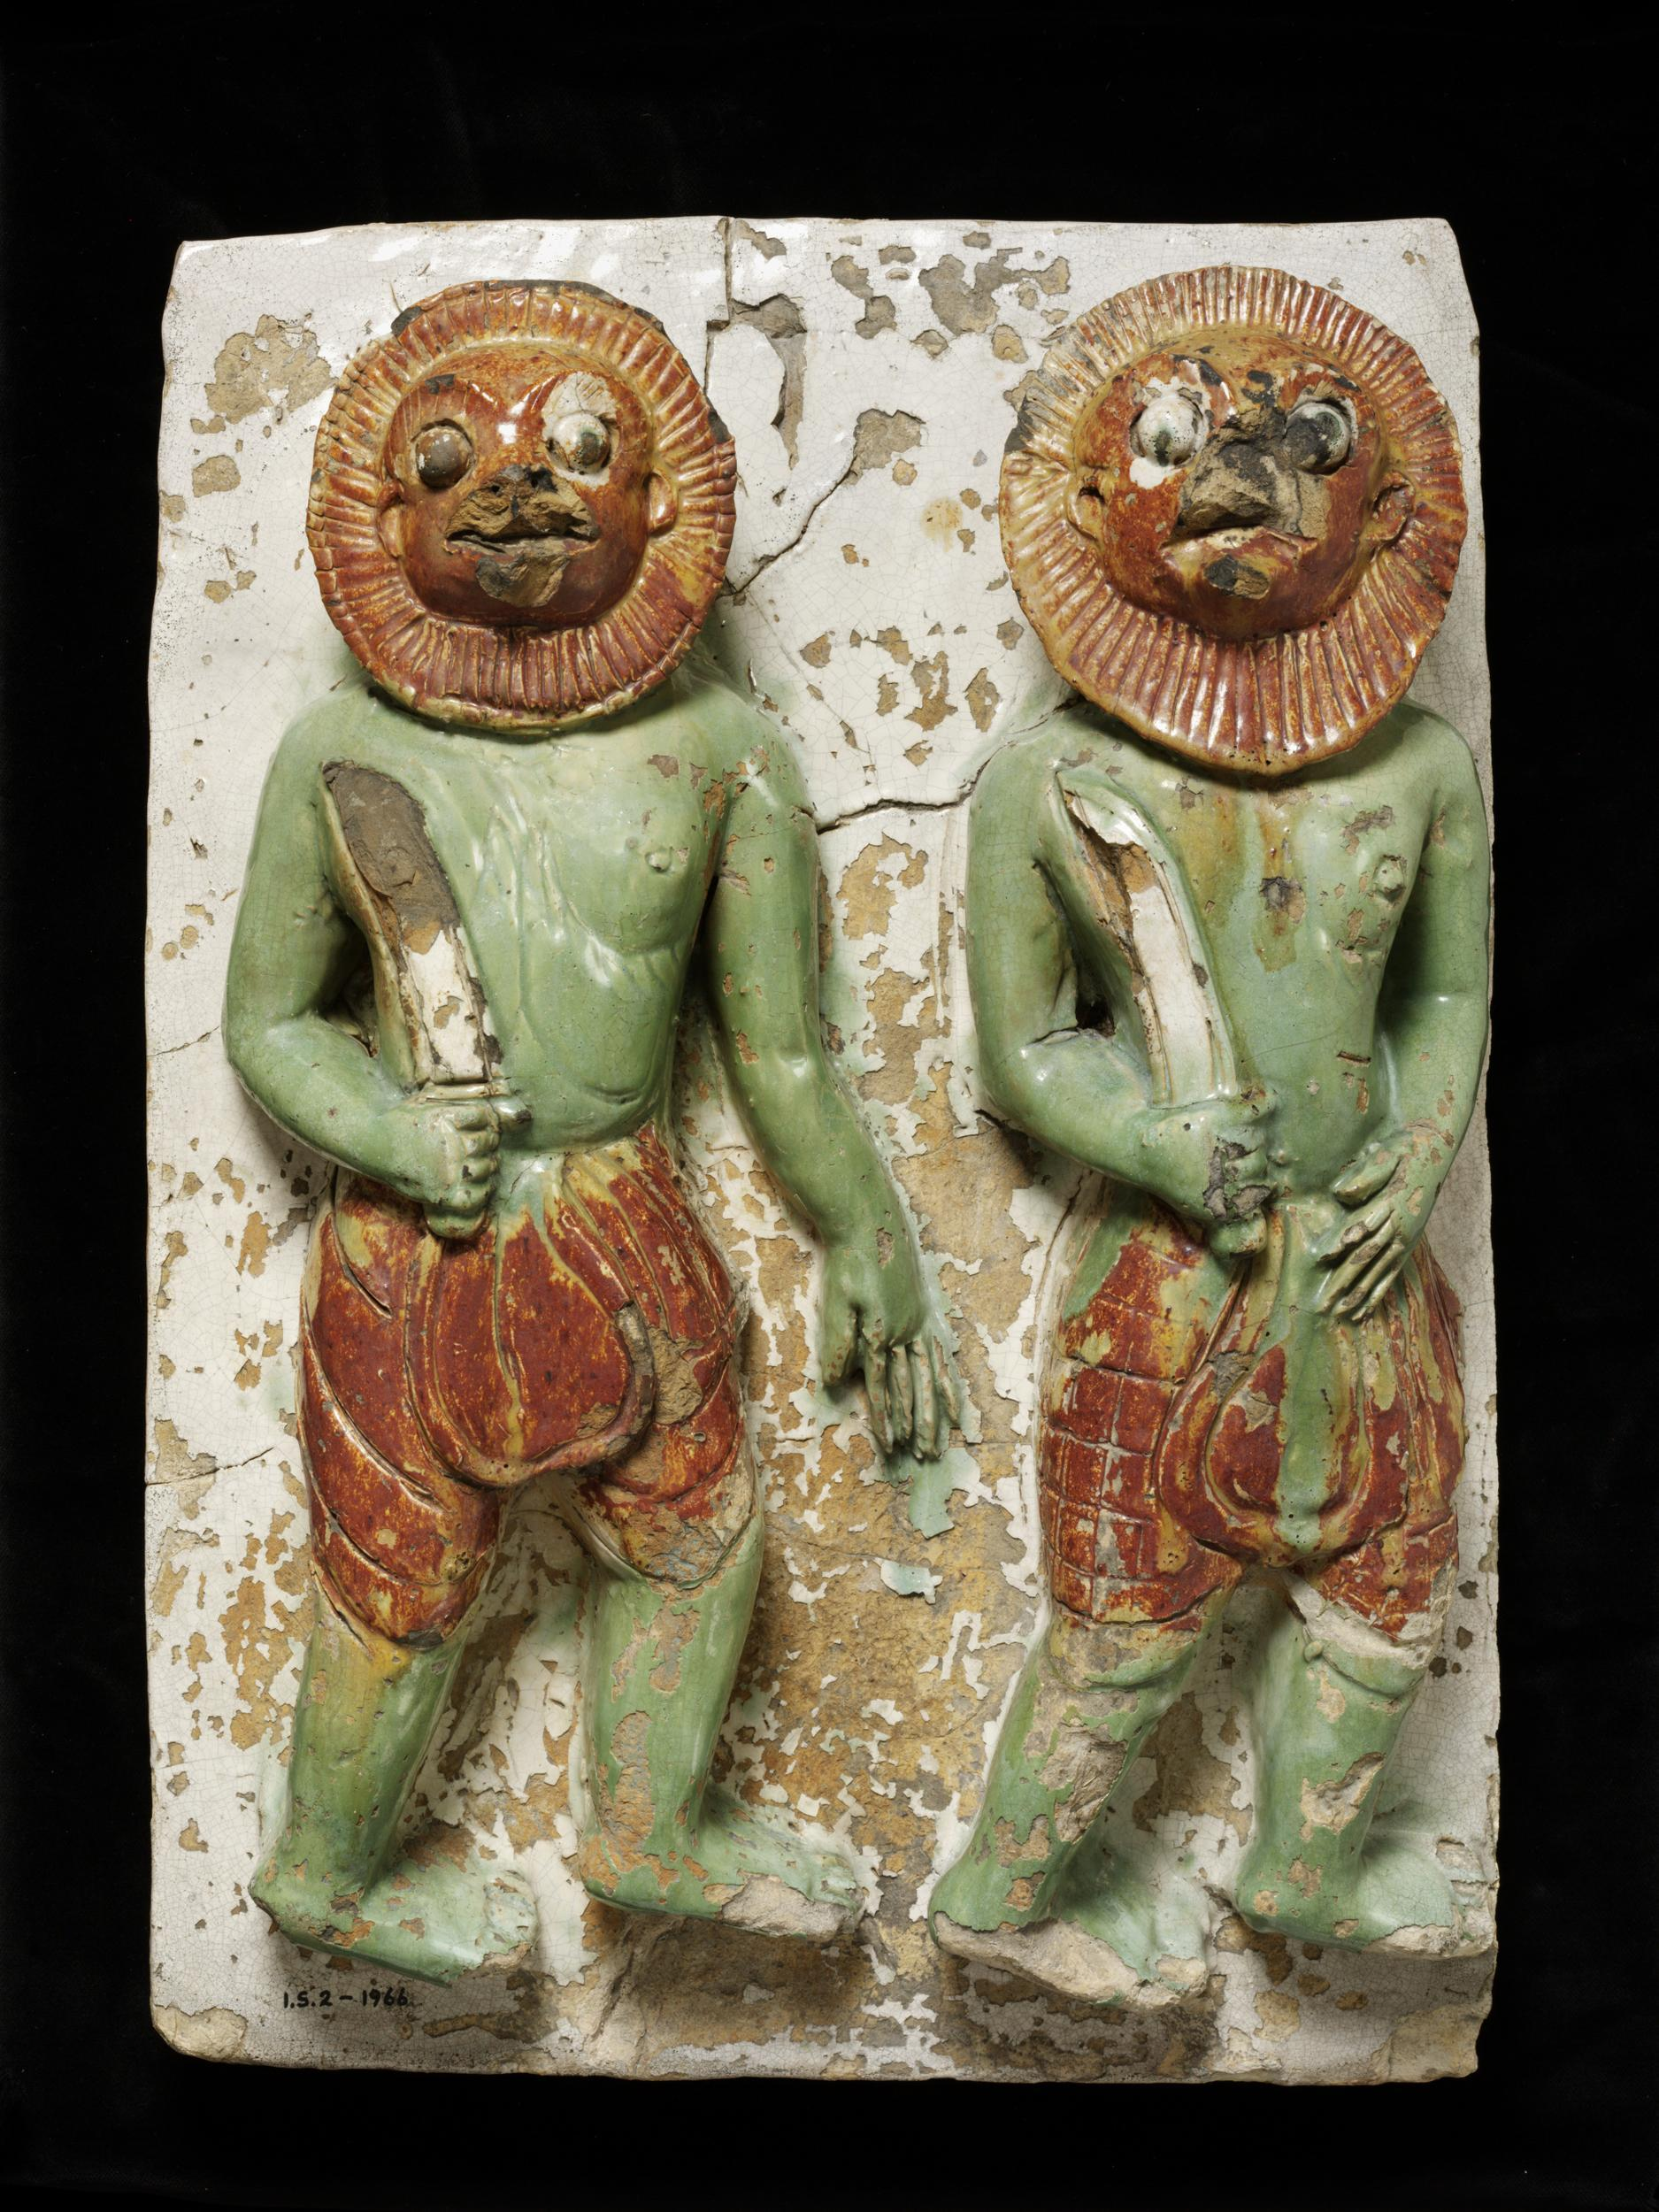 Tile depicting the warriors of Mara.